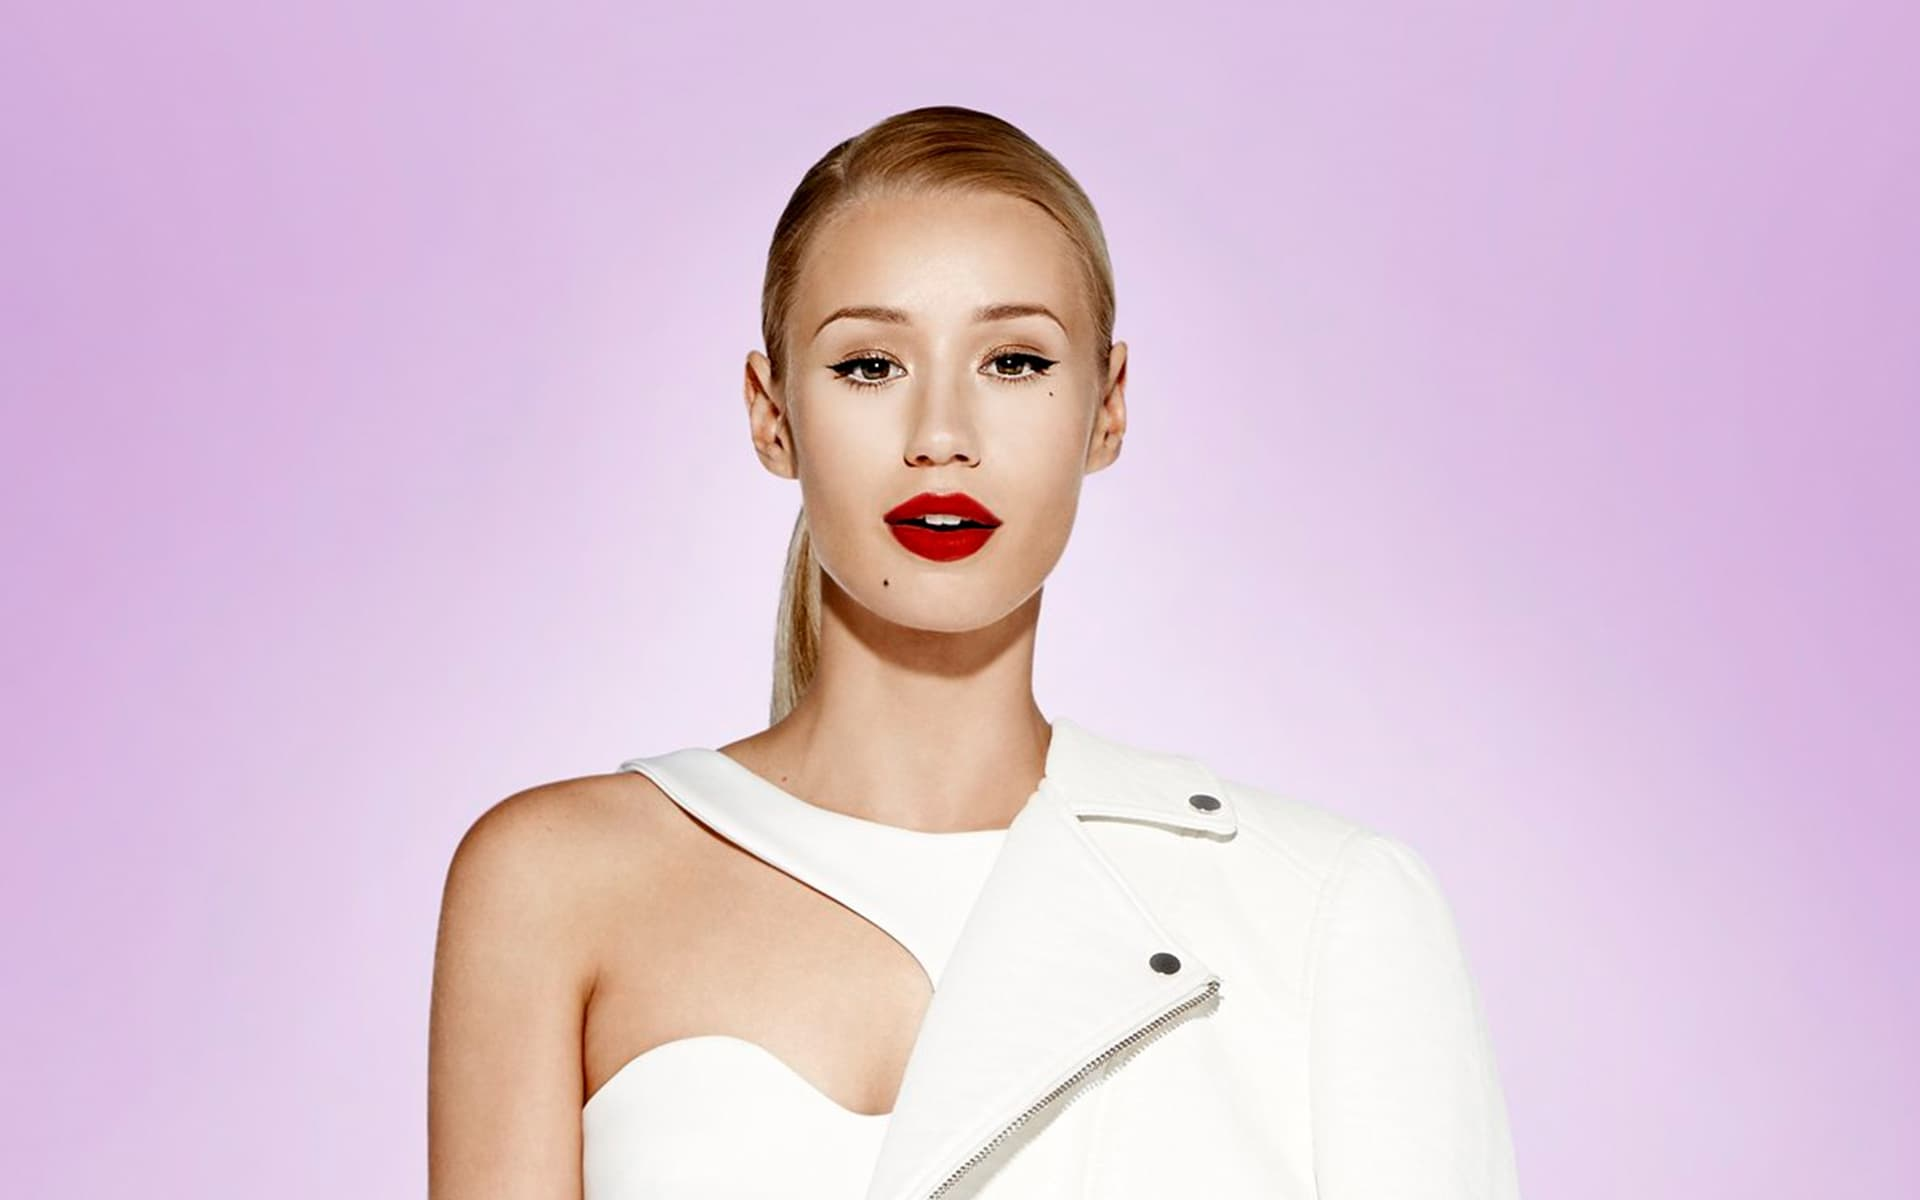 Download The Car Wallpaper 7 Iggy Azalea Wallpapers High Quality Download